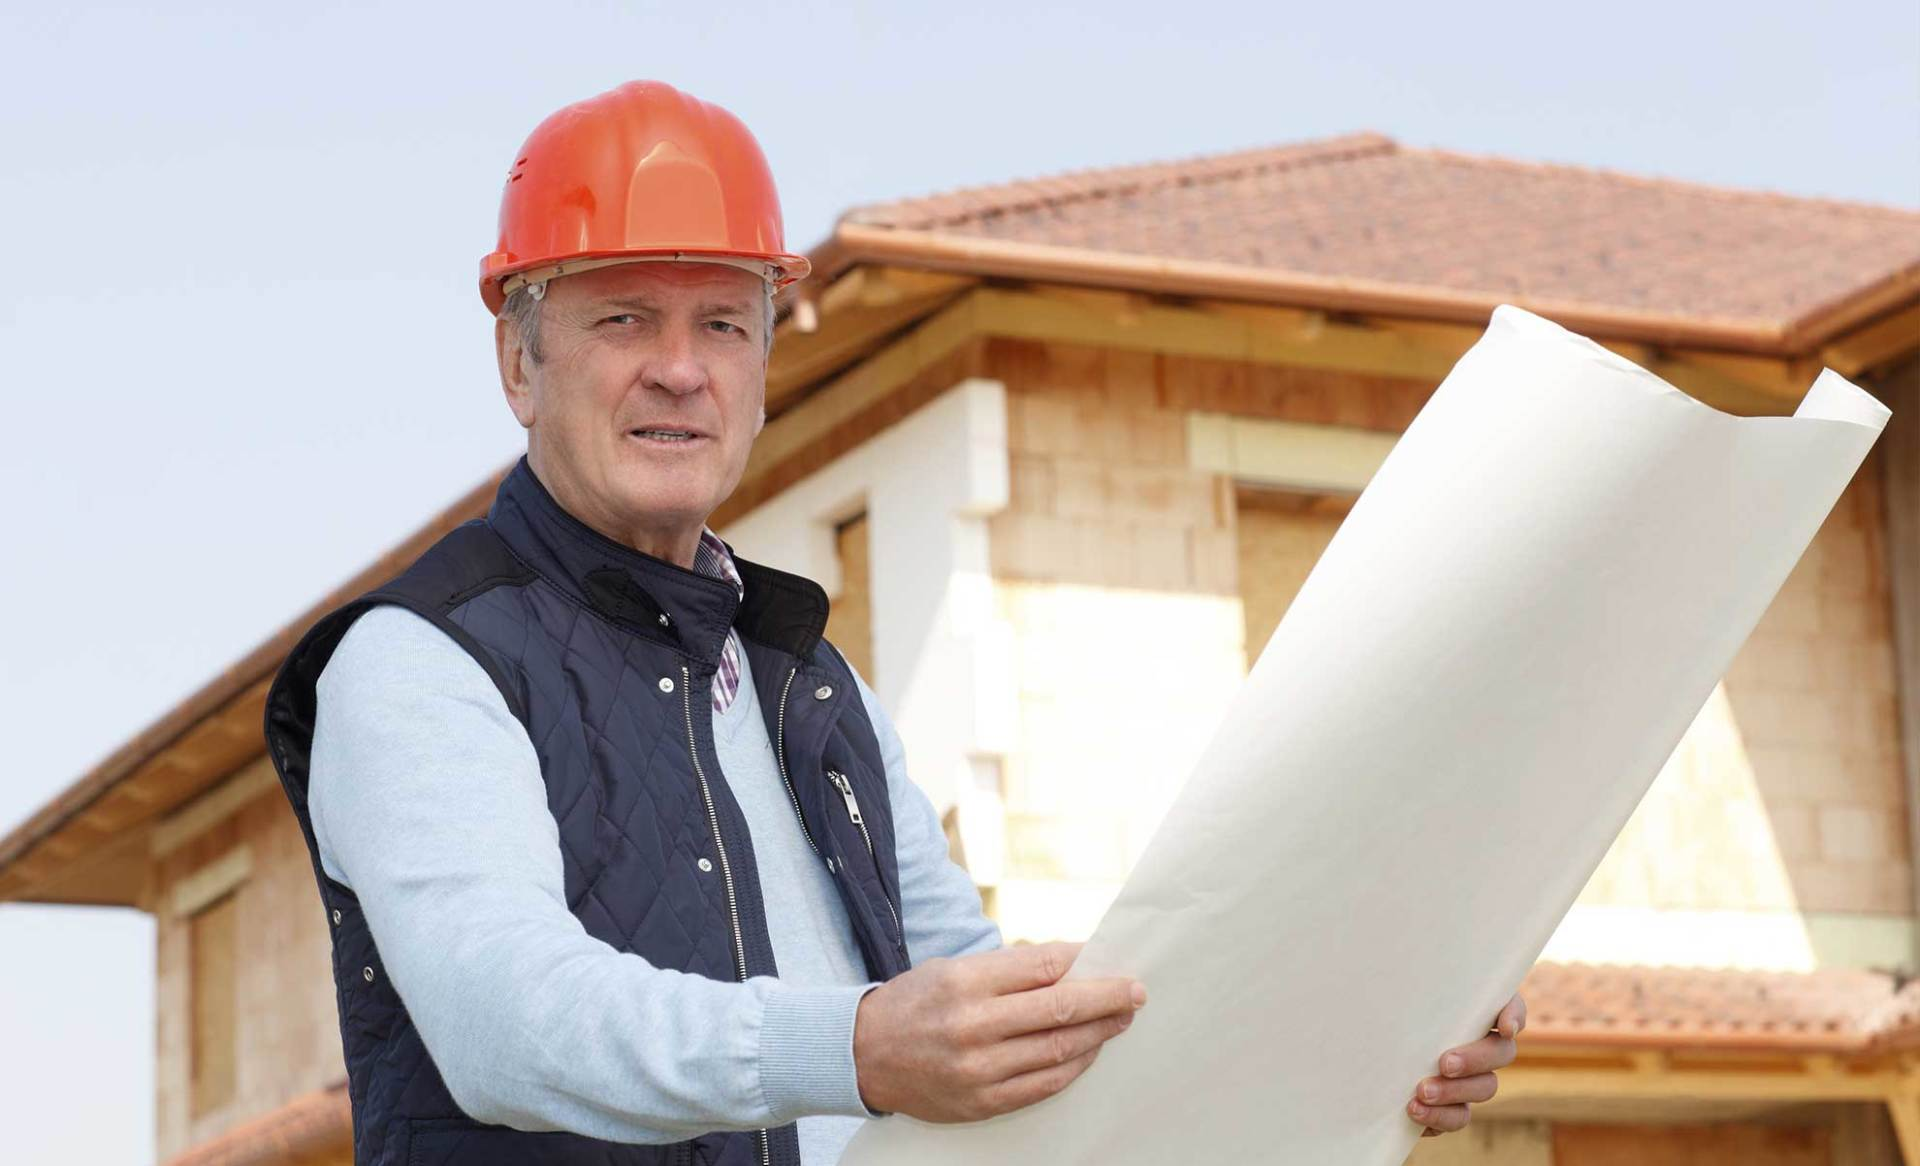 home construction worker referral